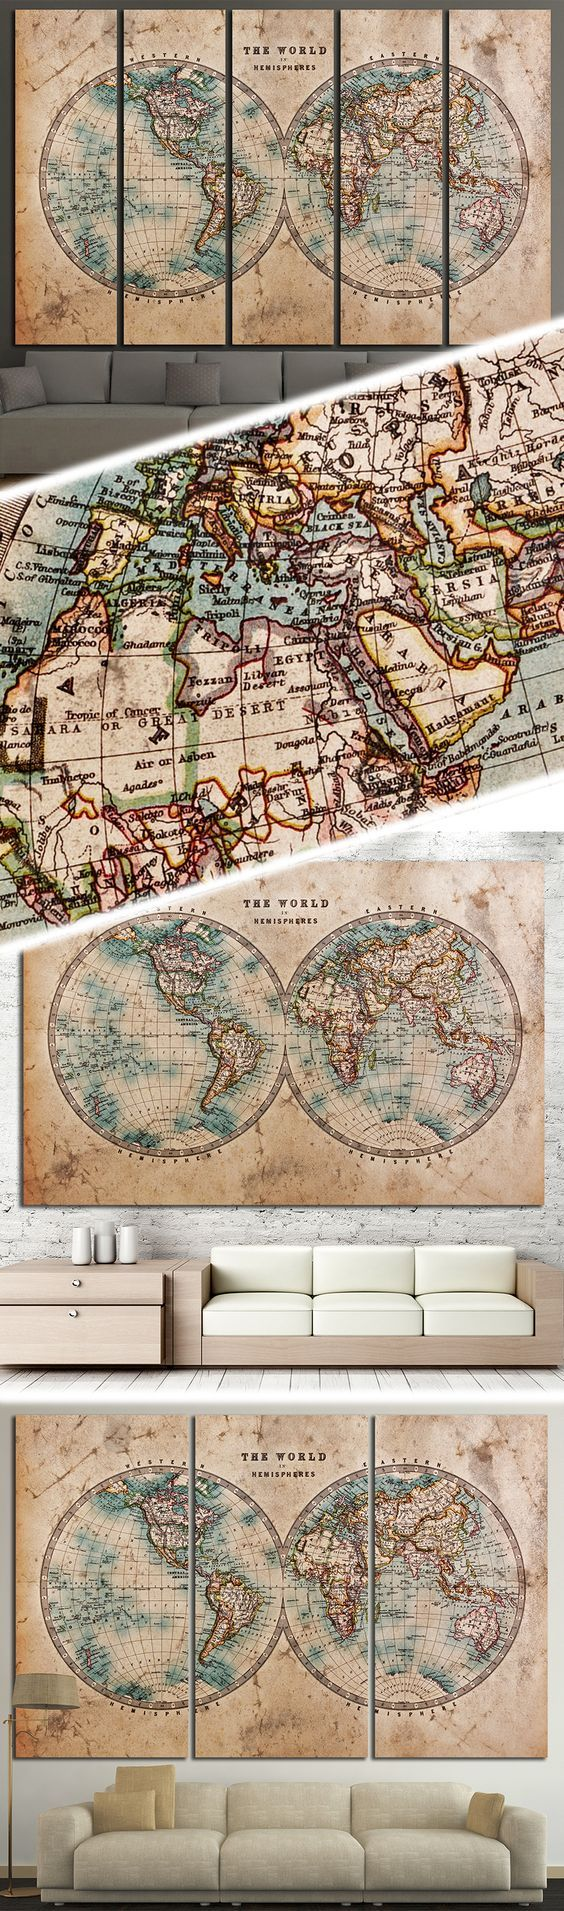 Old world map 862 map canvas office walls and wall decorations creative world map canvas prints wall art for large home or office wall decoration sale gumiabroncs Gallery